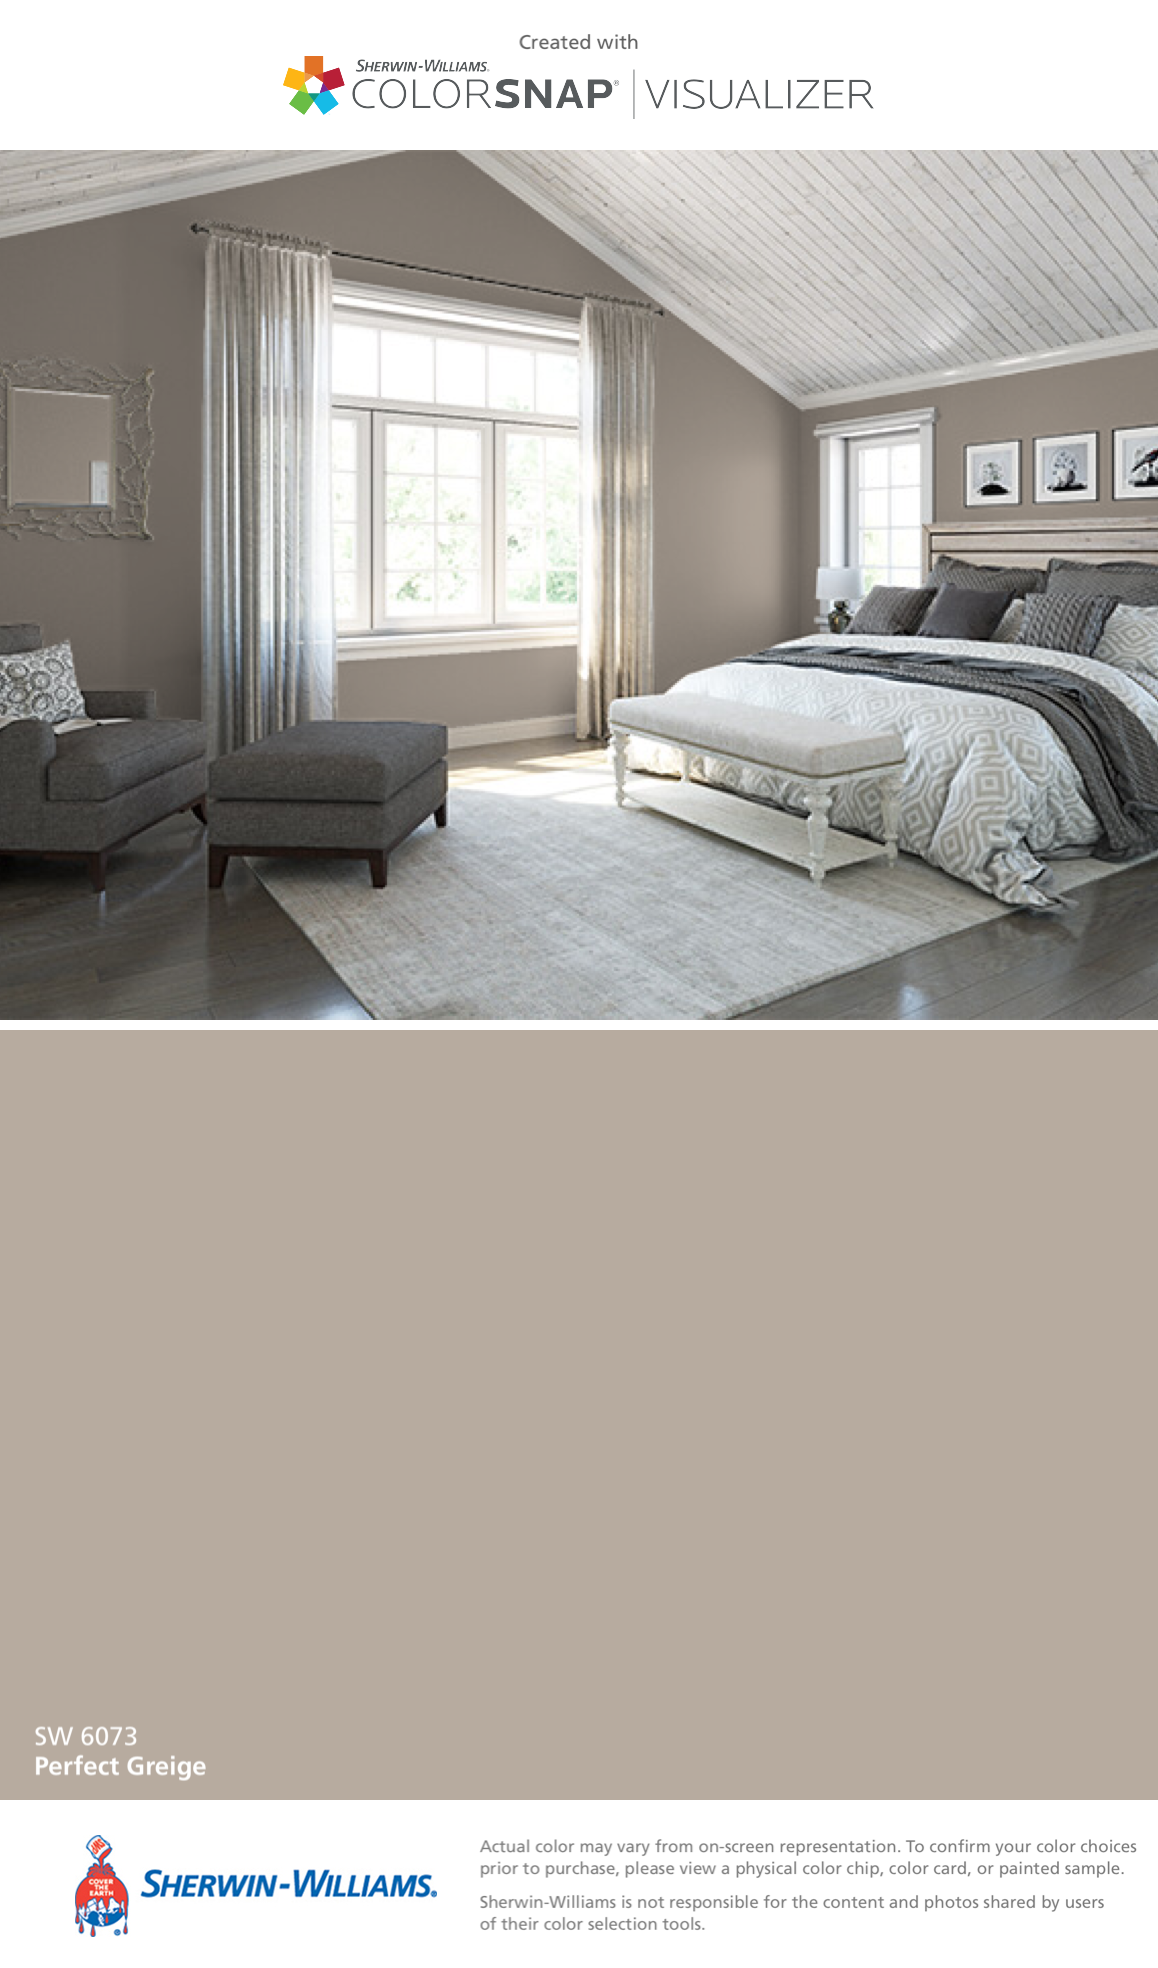 I Found This Color With Colorsnap Visualizer For Iphone By Sherwin Williams Perfect Greige Sw 6073